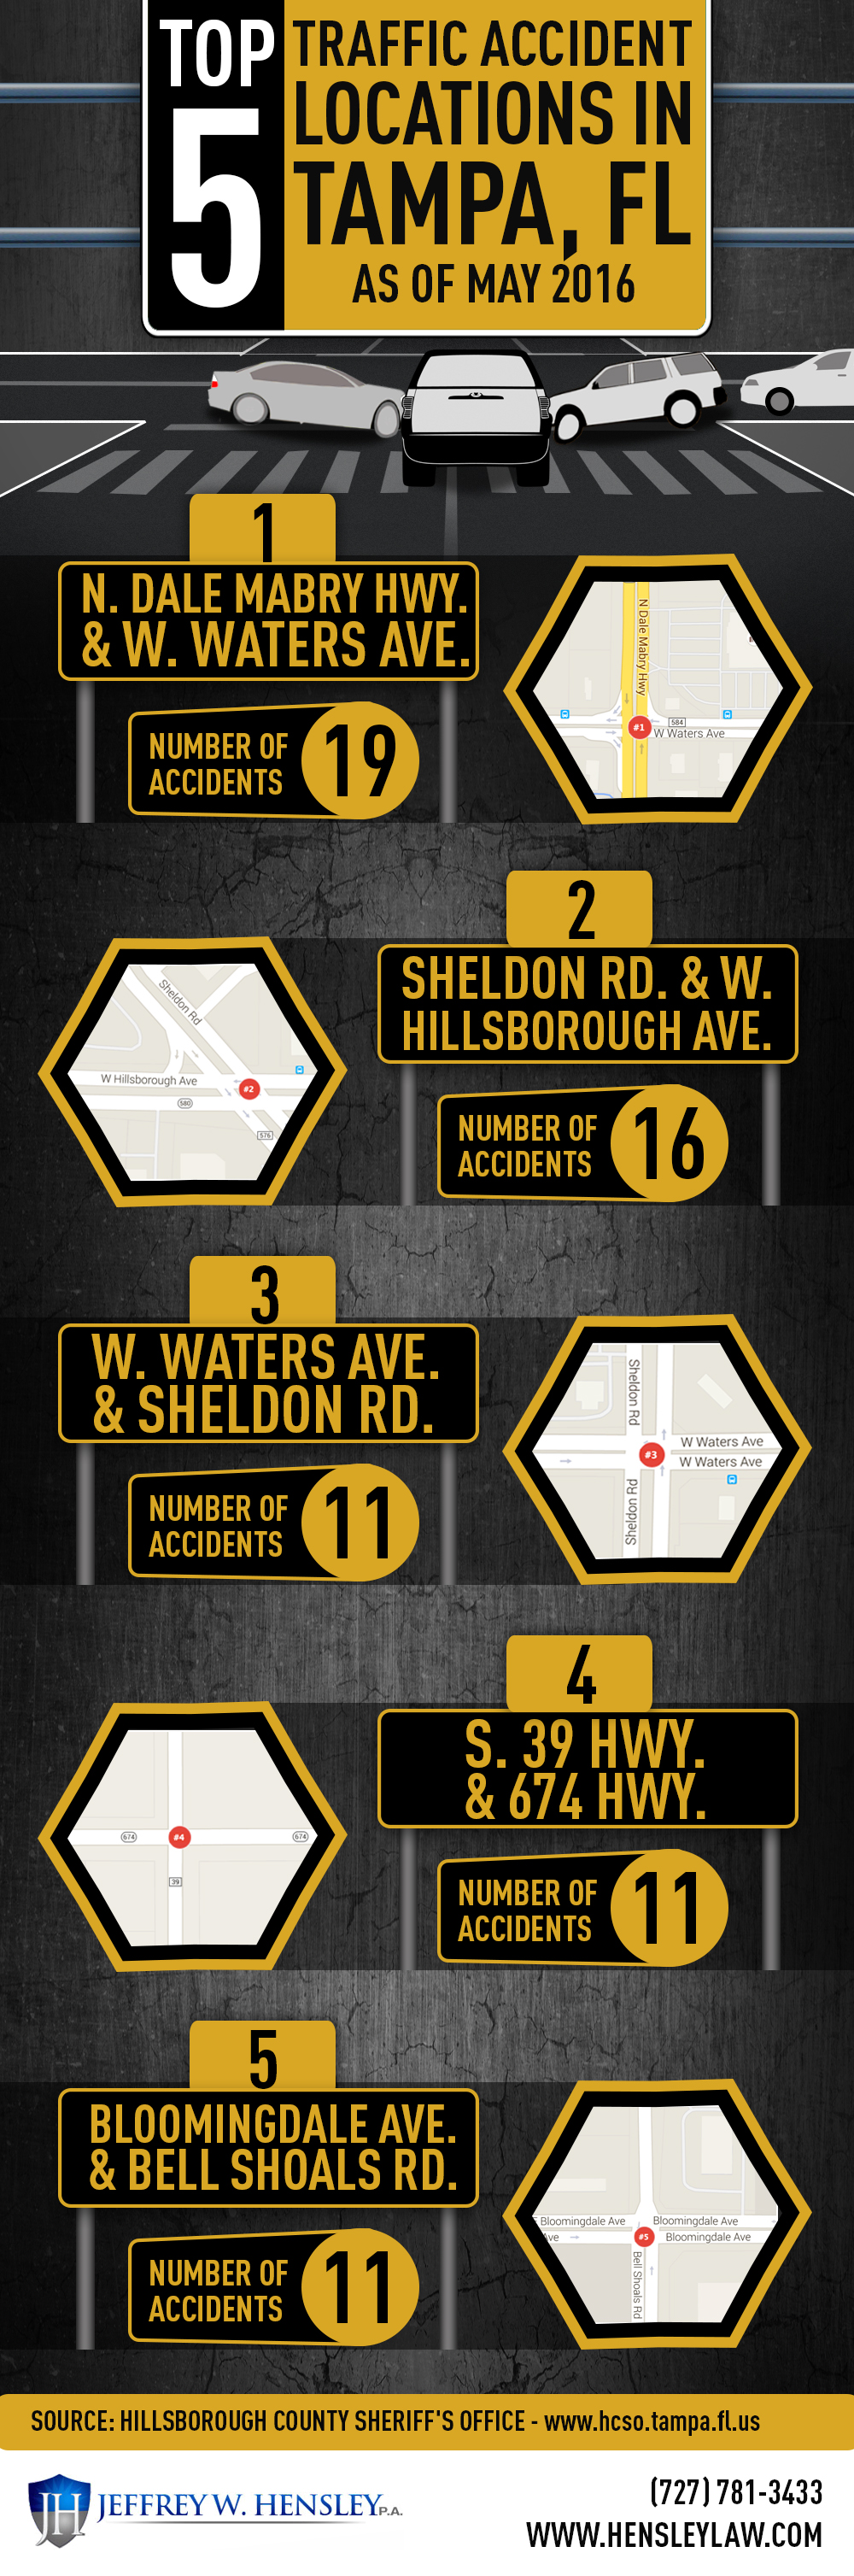 Top 5 Traffic Accident Locations In Tampa, FL